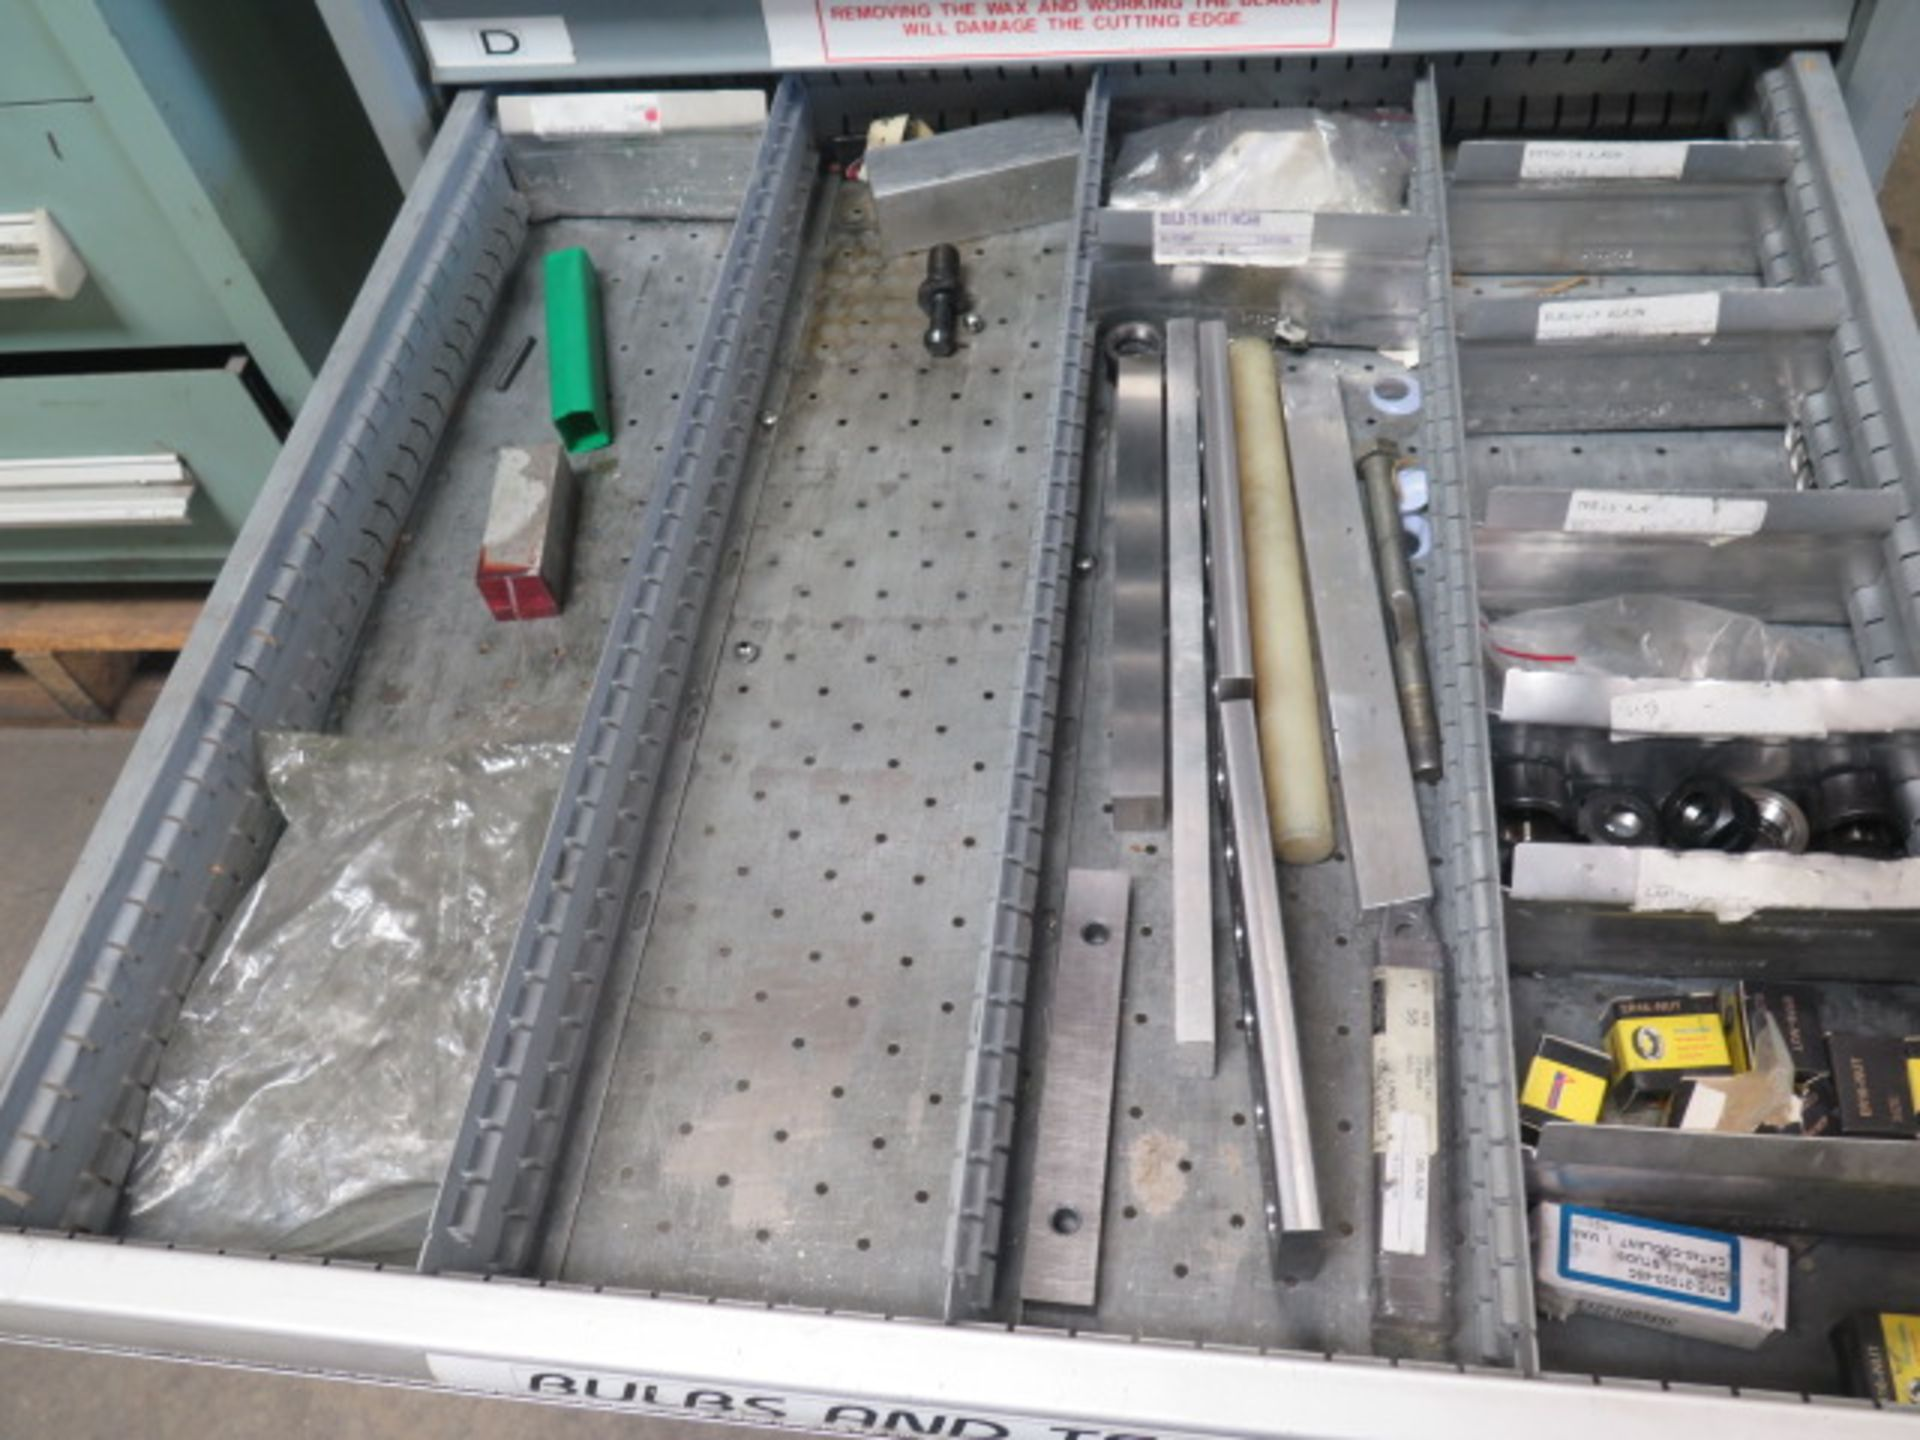 Lista 9-Drawer Tooling Cabinet w/ Mill Clamps (SOLD AS-IS - NO WARRANTY) - Image 10 of 11